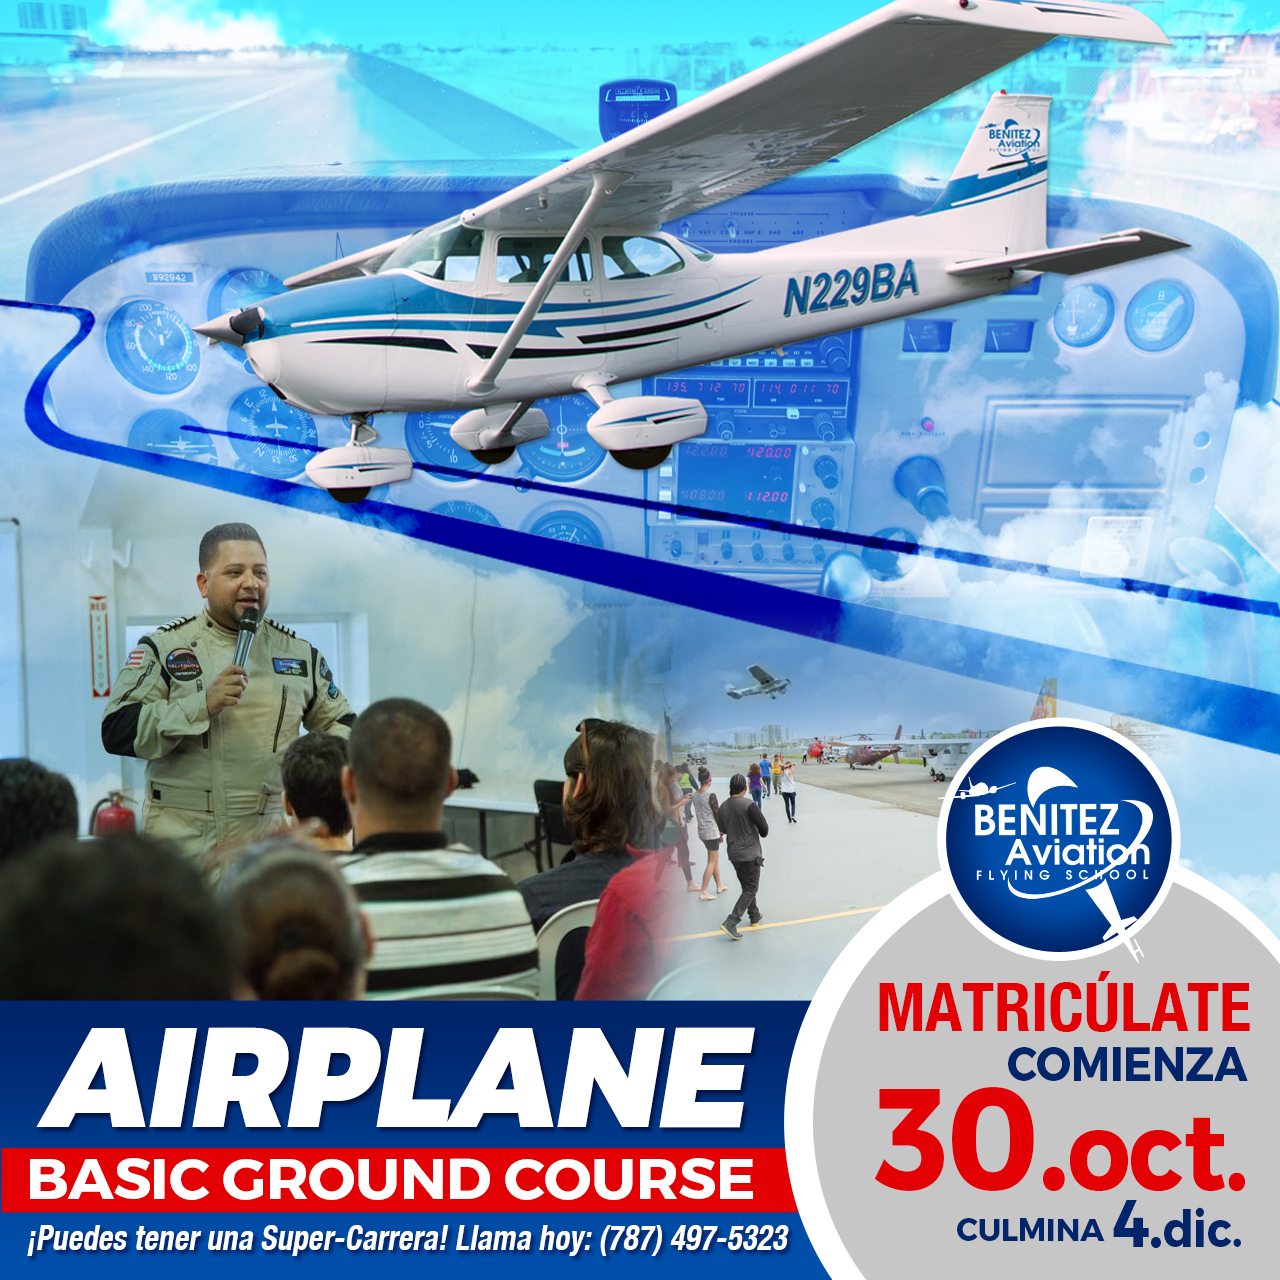 Airplane Basic Ground Course